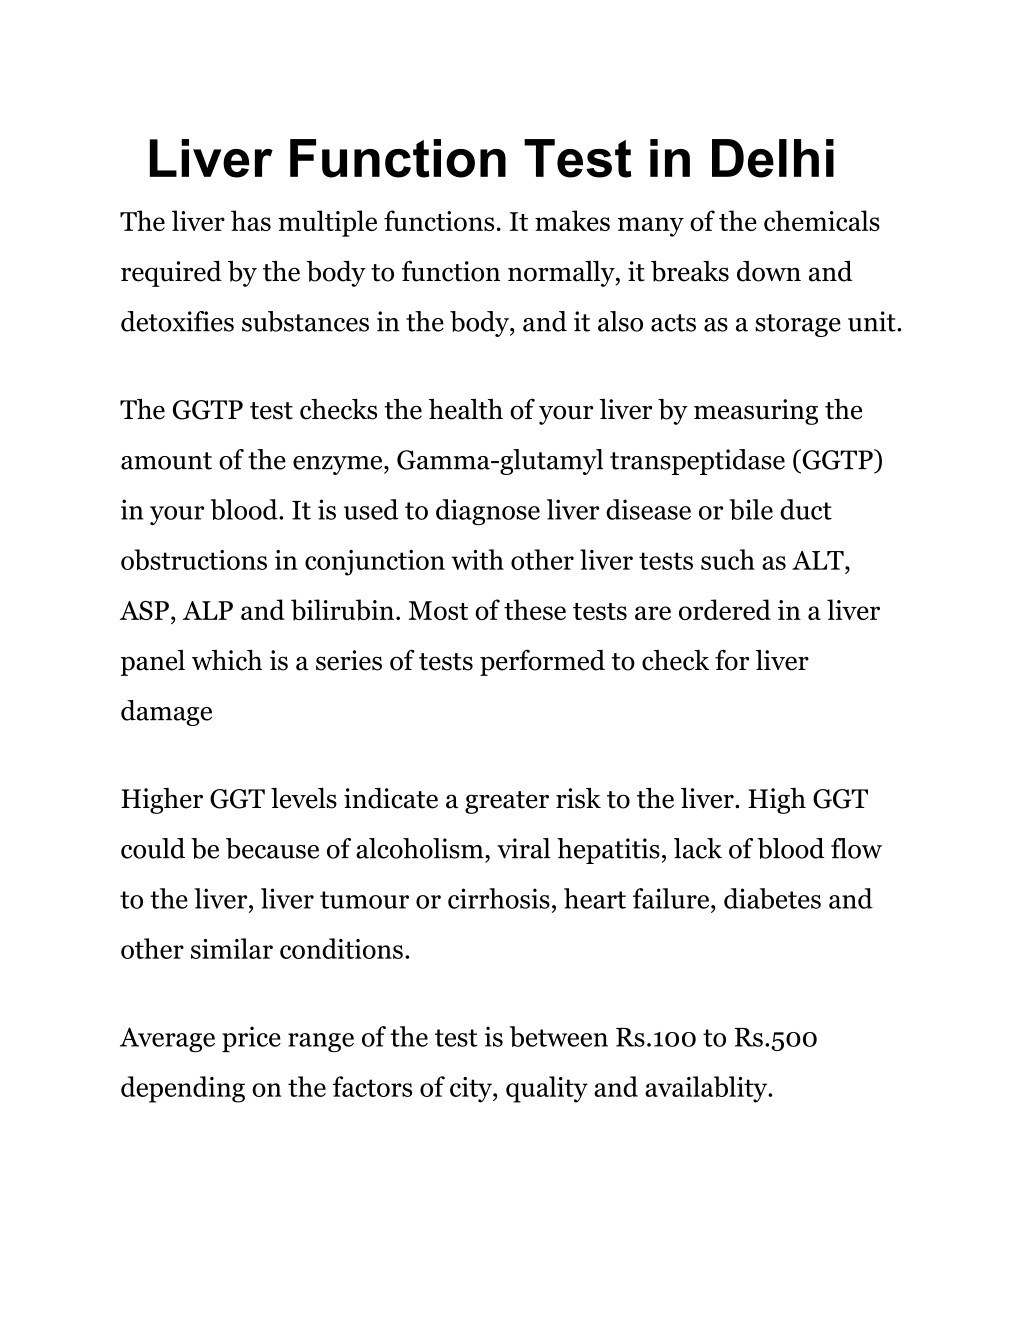 Ppt Liver Function Test In Delhi Powerpoint Presentation Id7793084